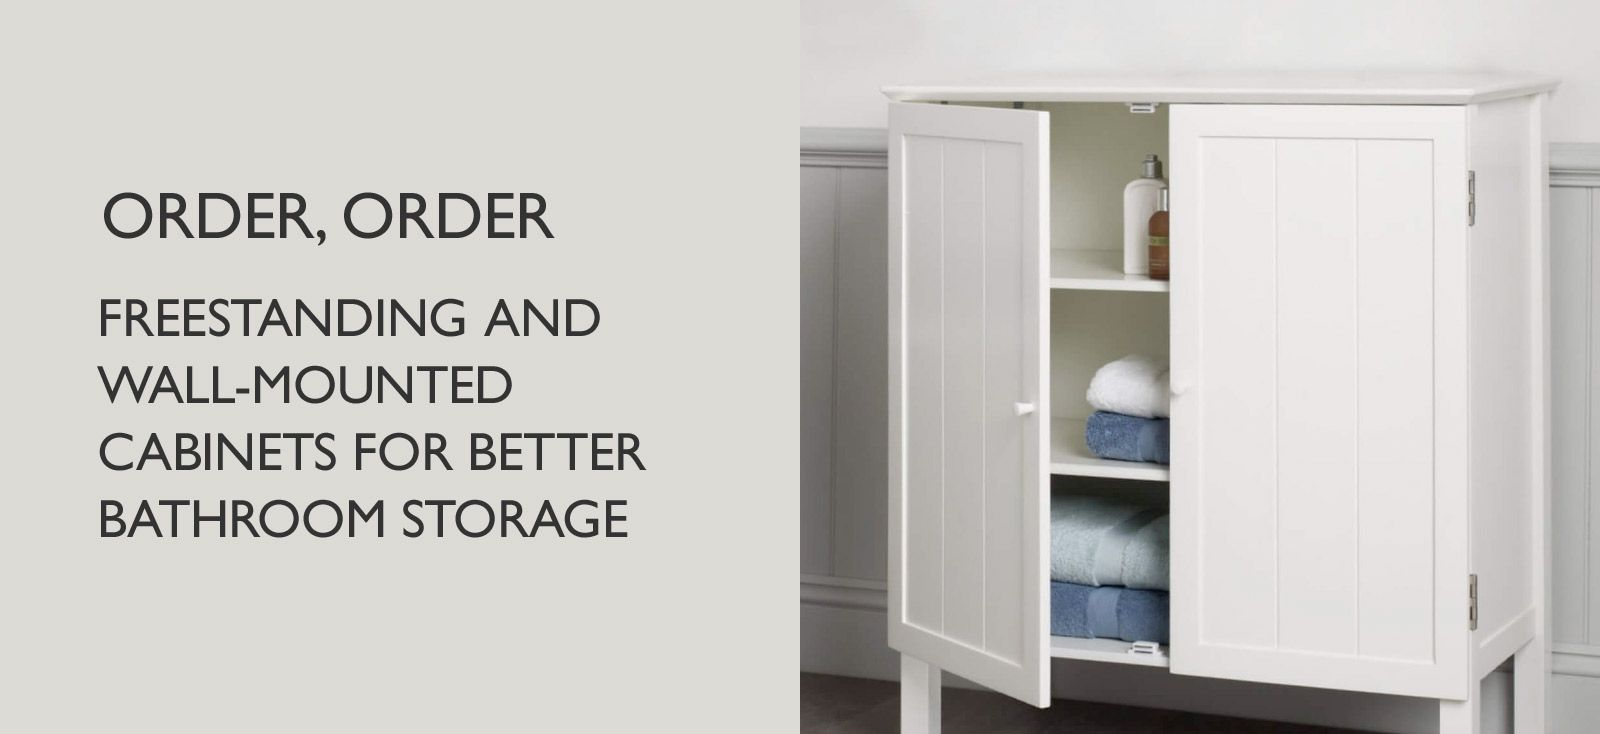 Freestanding and wall-mounted cabinets for better bathroom storage